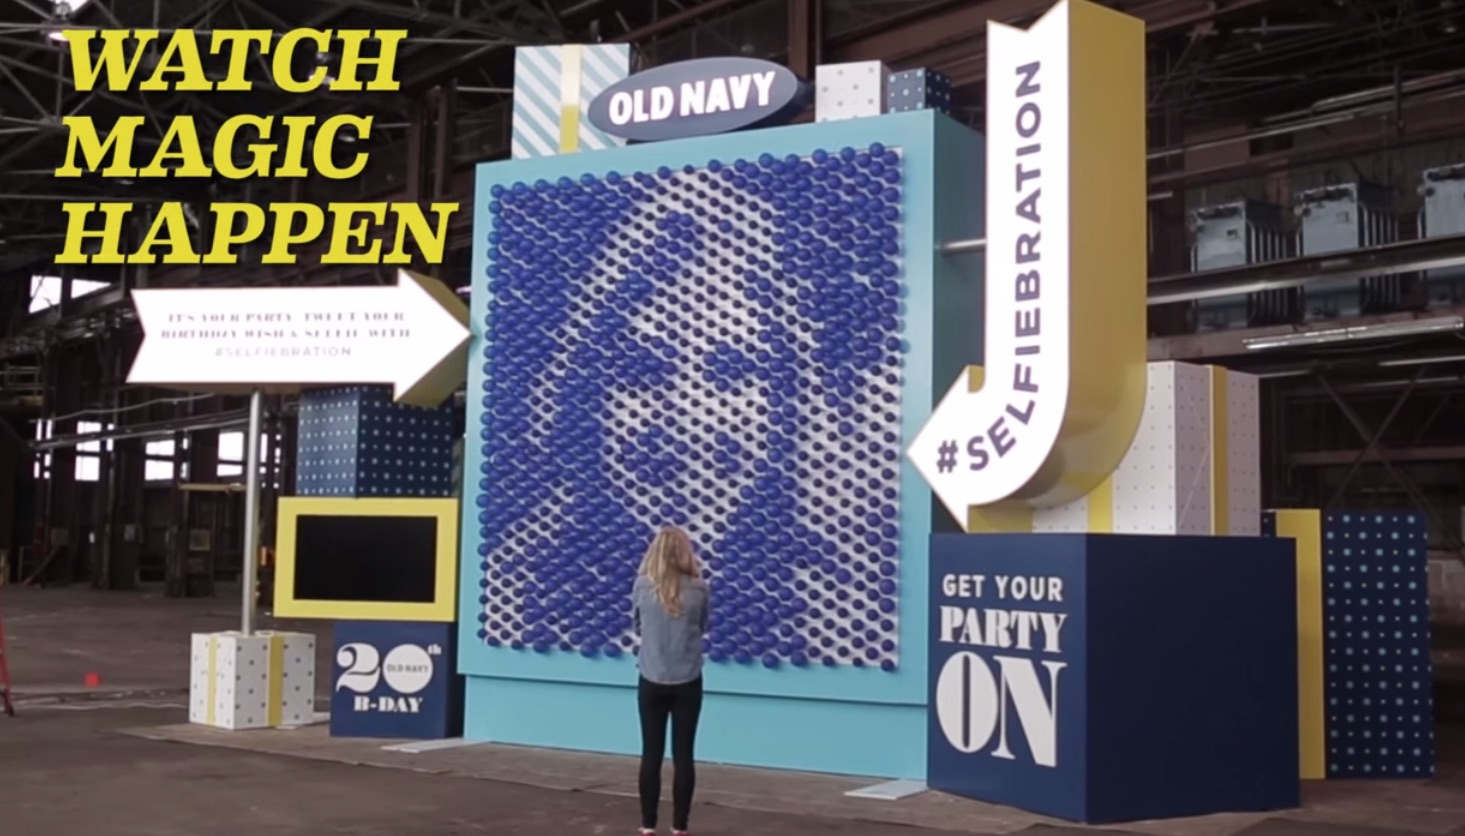 Old Navy Celebrating Birthday By Rendering Selfies In Balloons For Some Reason